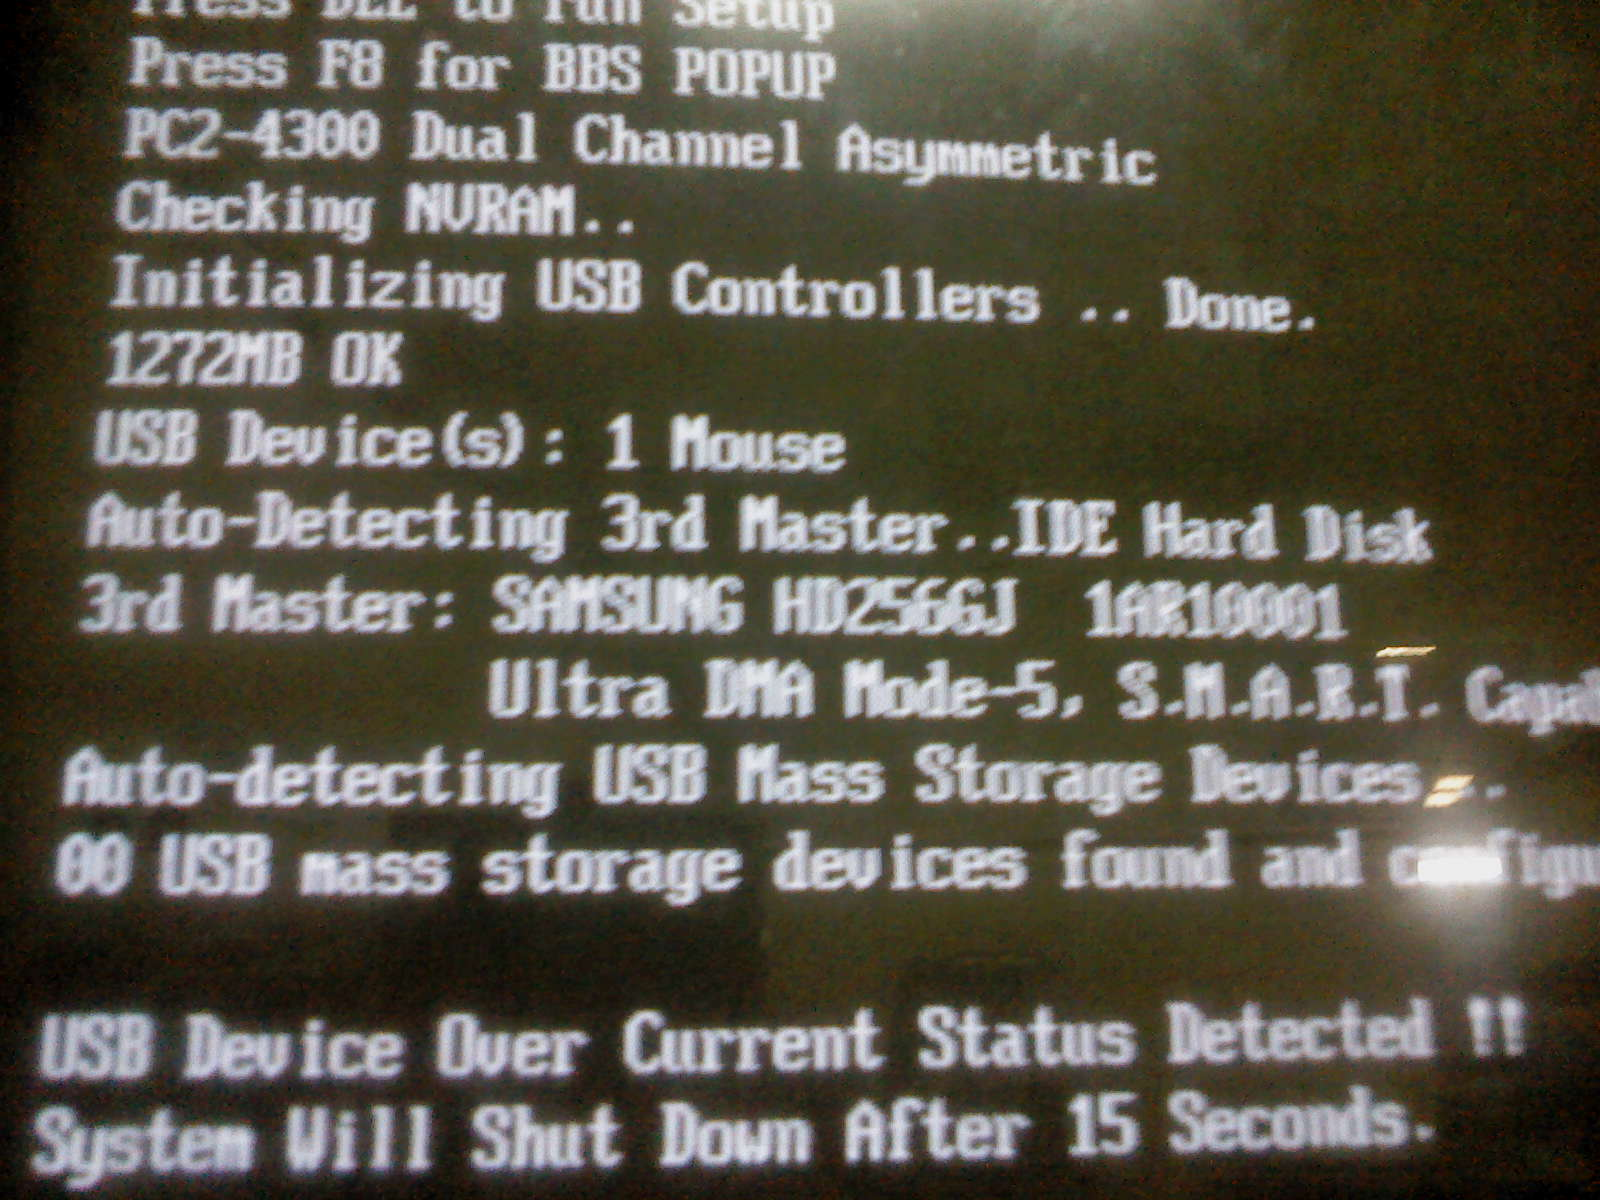 Asus M5A78L-M LX3 - USB Device Over Current Status Detected